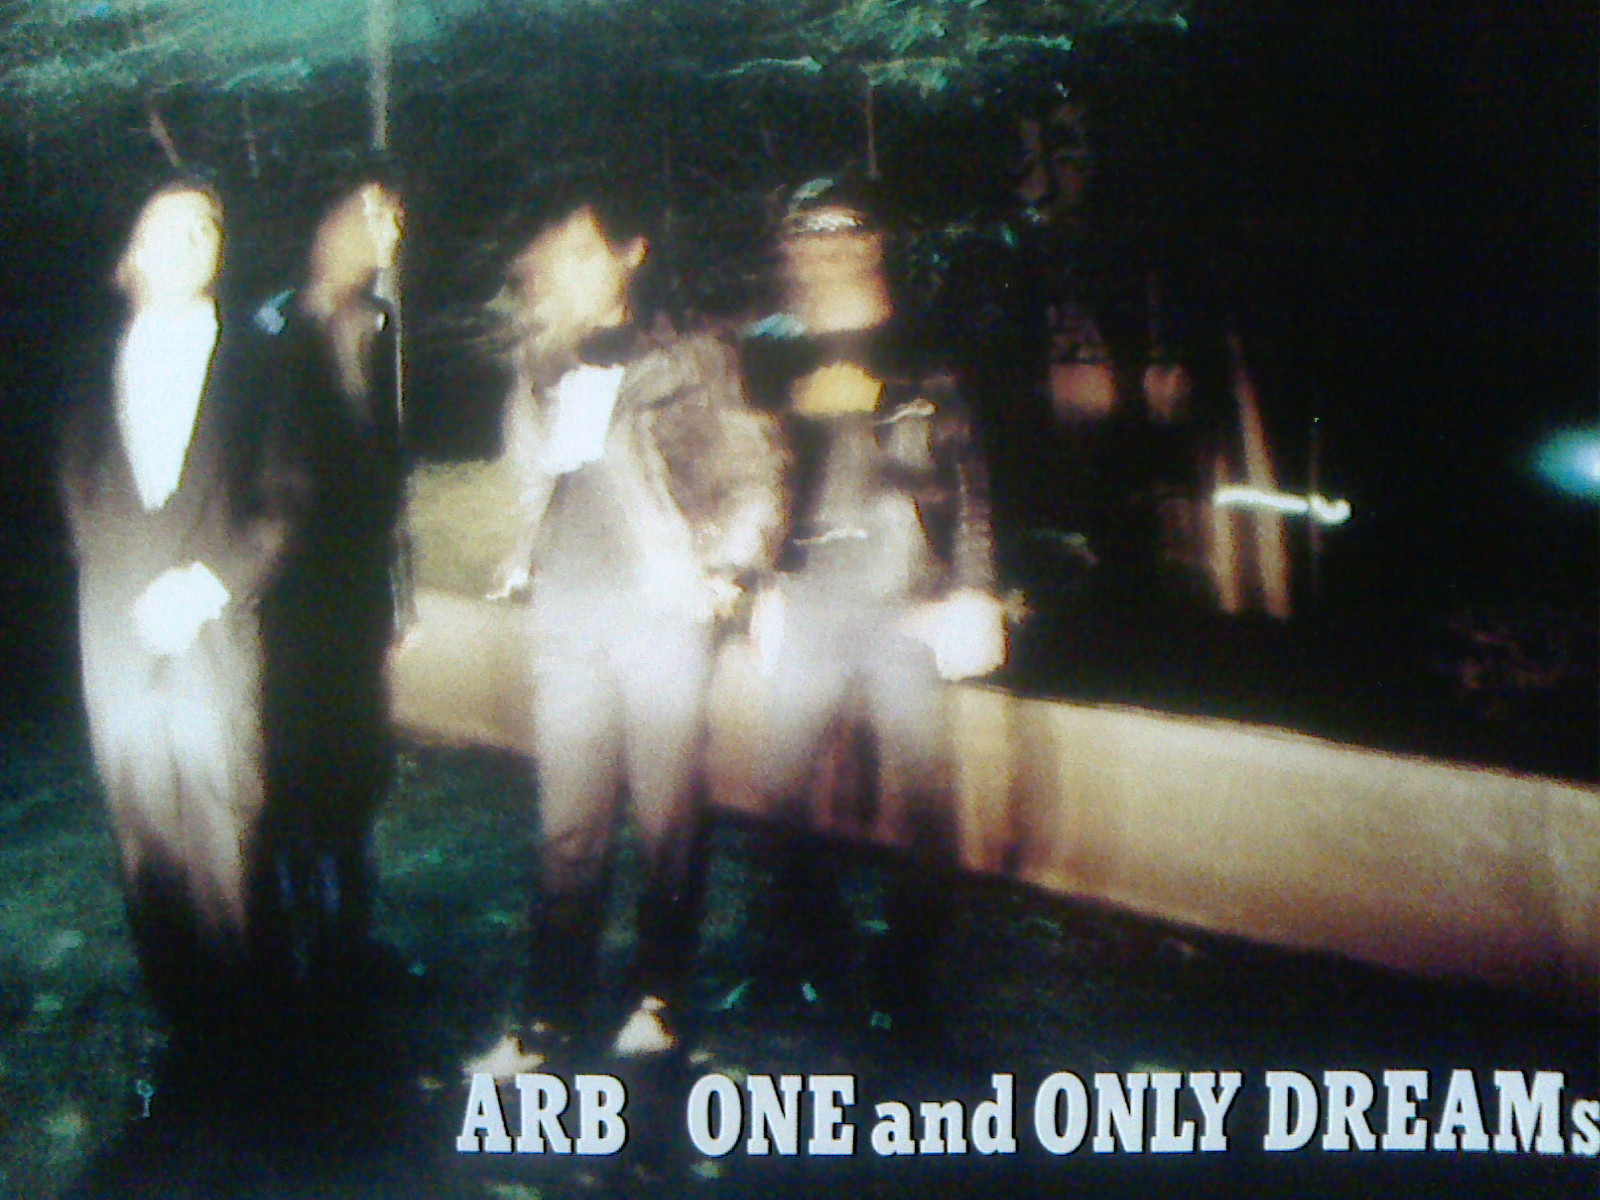 ONE and ONLY DREAMs / ARB_c0104445_1955438.jpg